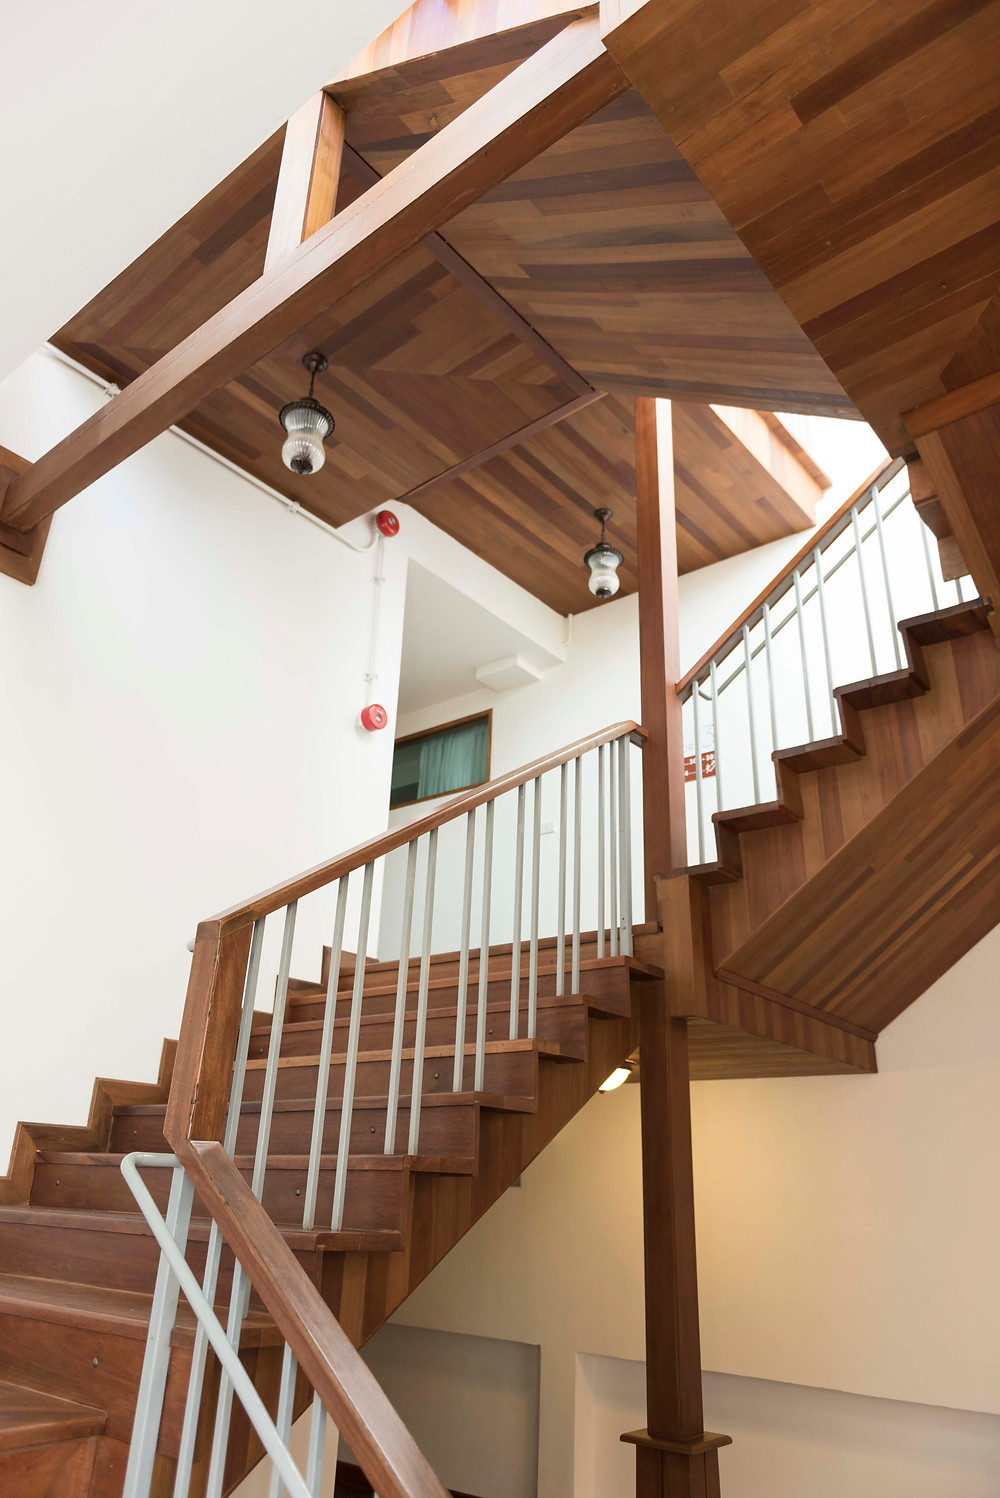 View of one of interior architecture of the staircase at The Tippanet Hotel